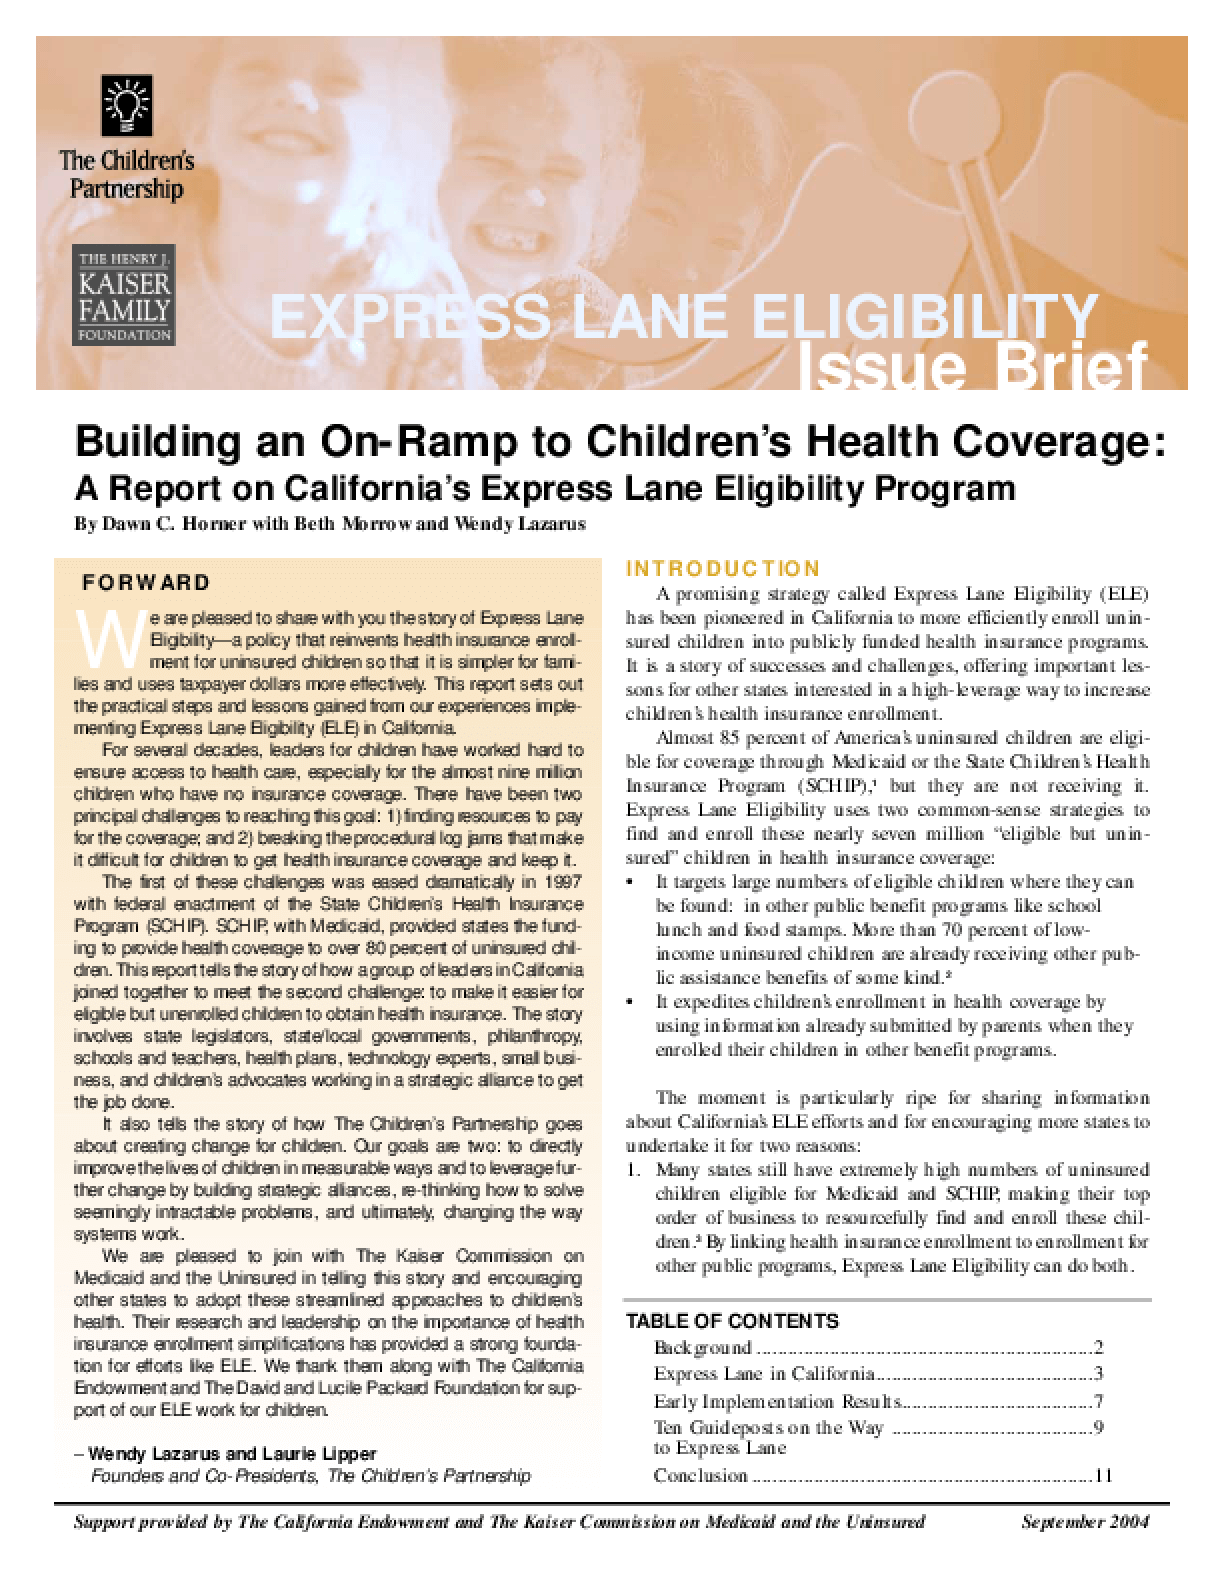 Building an On-Ramp to Children's Health Coverage: A Report on California's Express Lane Eligibility Program